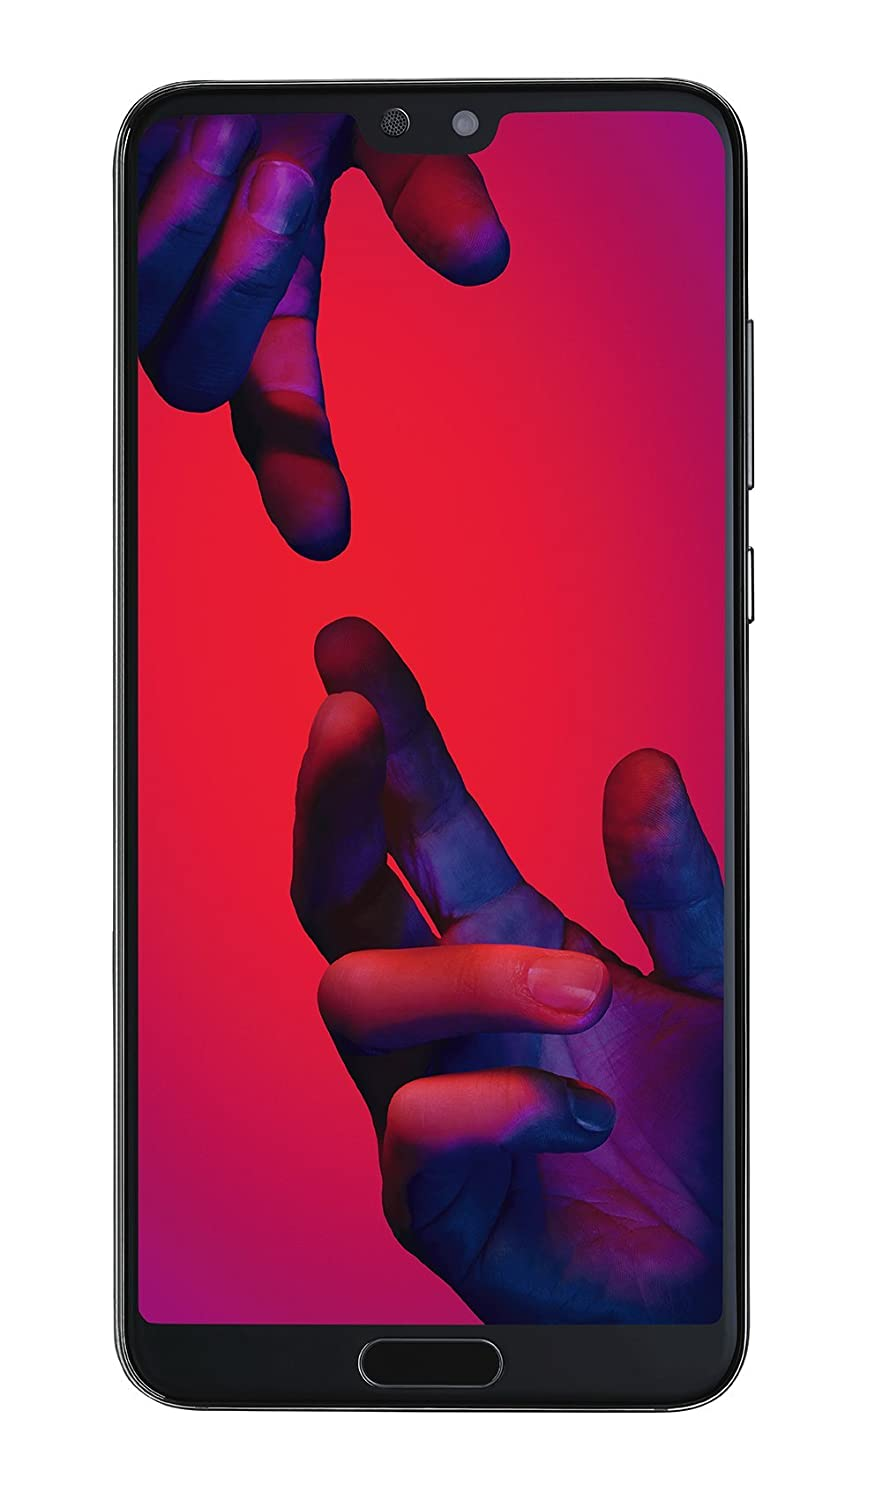 Huawei P20 Pro 128GB Dual-SIM Factory Unlocked 4G/LTE Smartphone (Black) - International Version